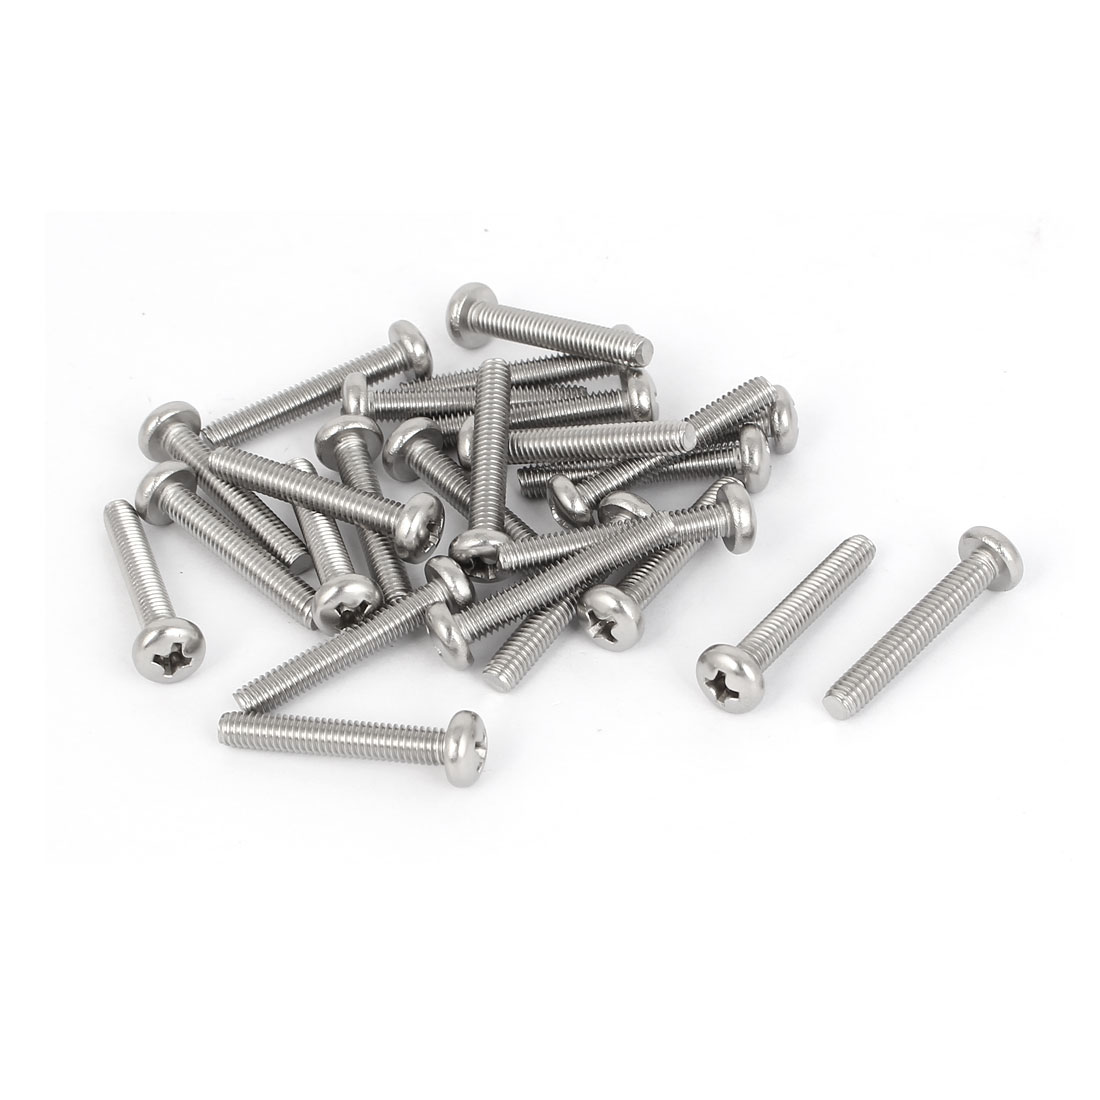 25 Pcs M4x25mm 316 Stainless Steel Phillips Pan Head Machine Screws 28mm Long